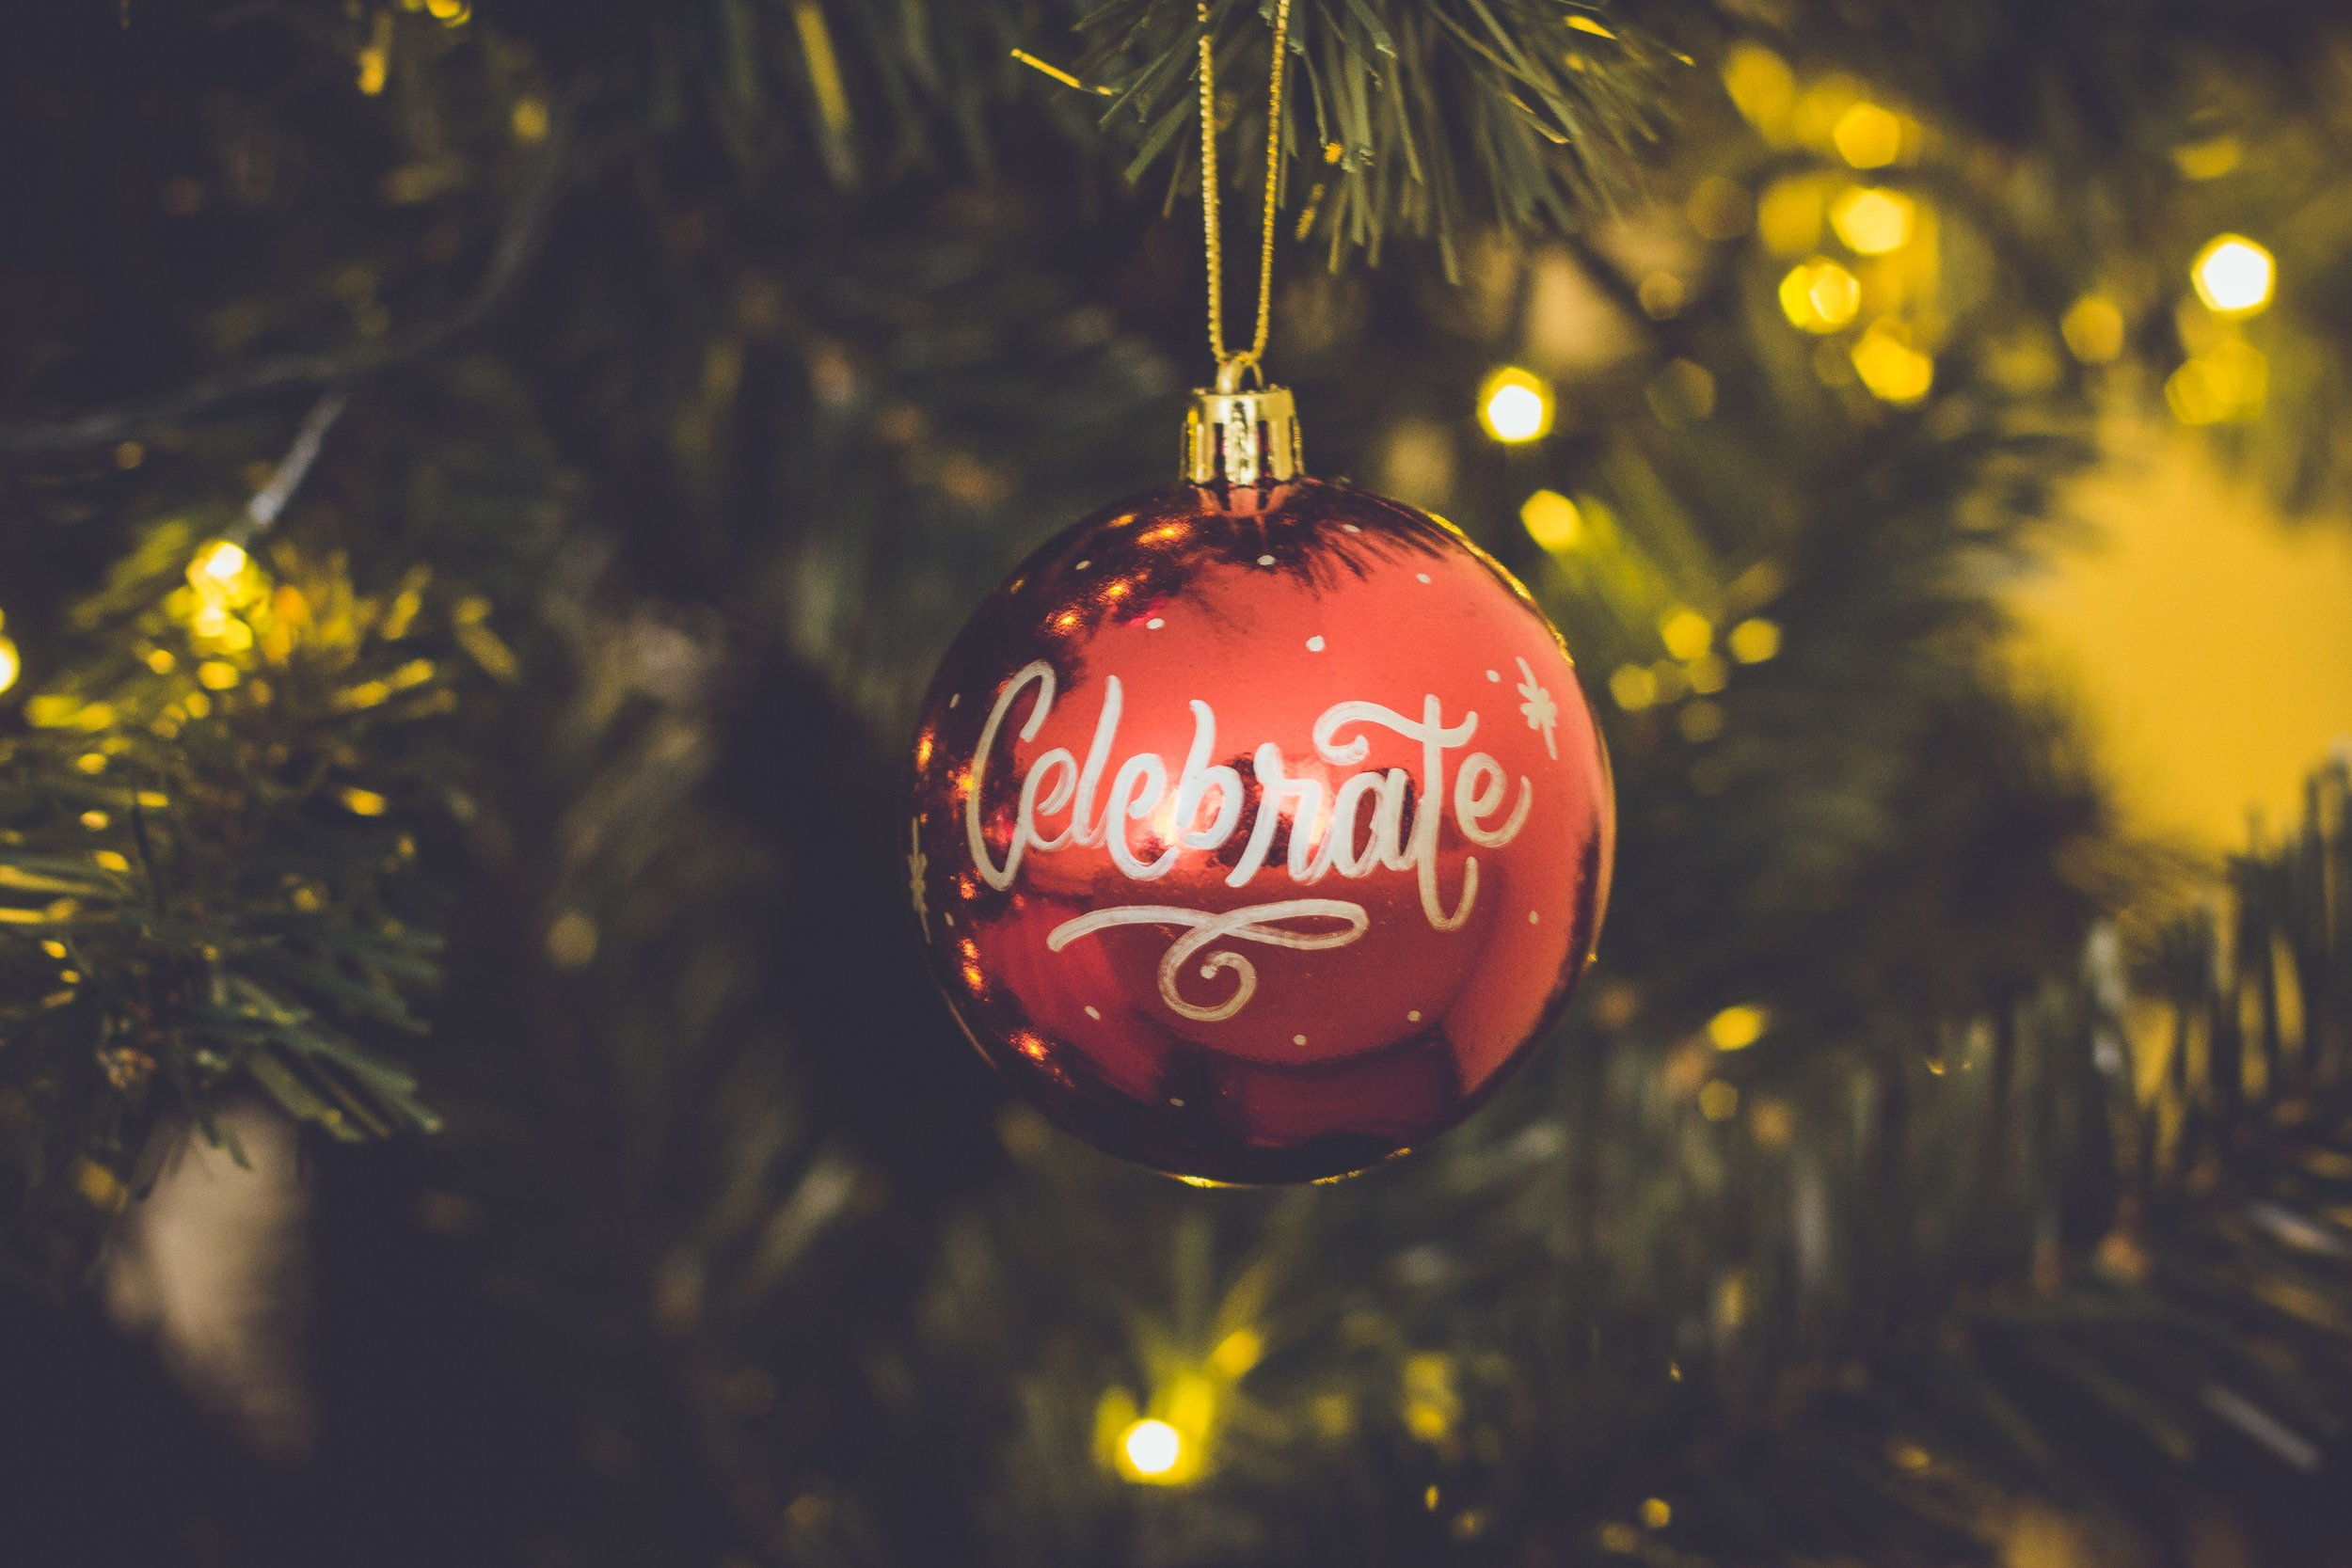 have a happy 2019! - Don't forget to refer to last years blog post for valuable Feng Shui tips for the new year. Wishing all of you a wonderful Holiday season and a very happy 2019. Thank you for visiting. Until next year.